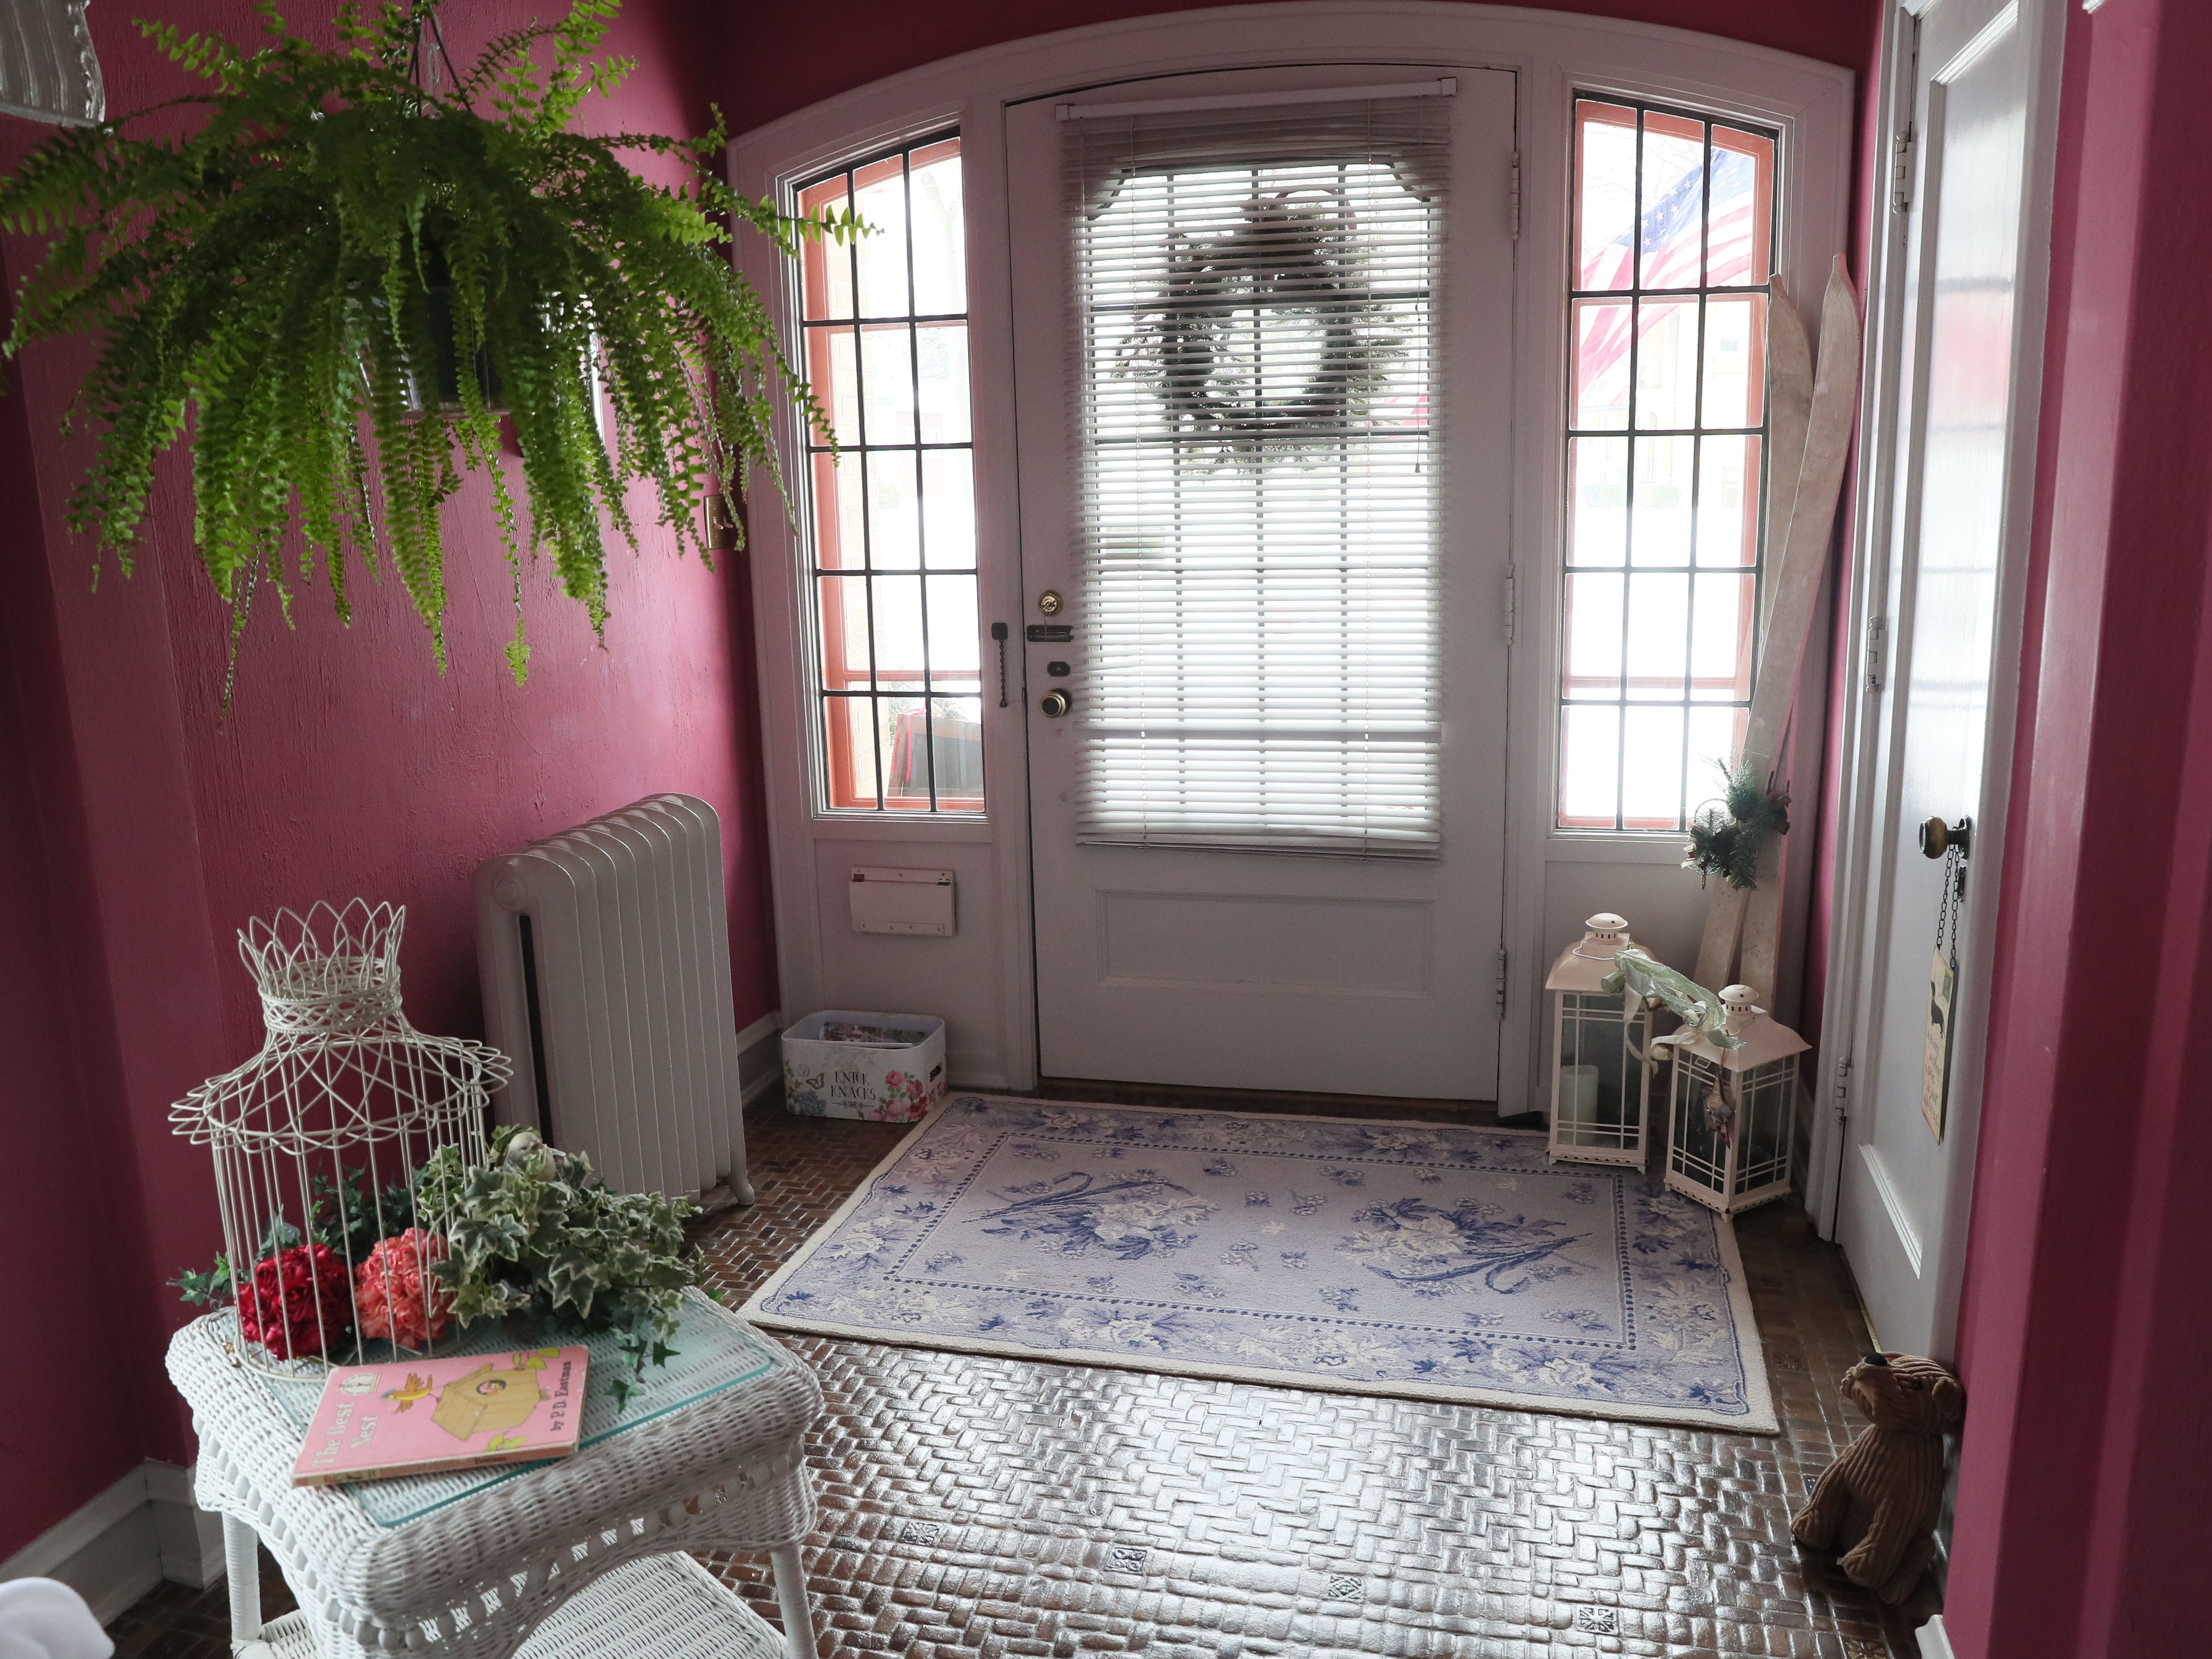 The front door opens to an entryway leading to the sunroom.